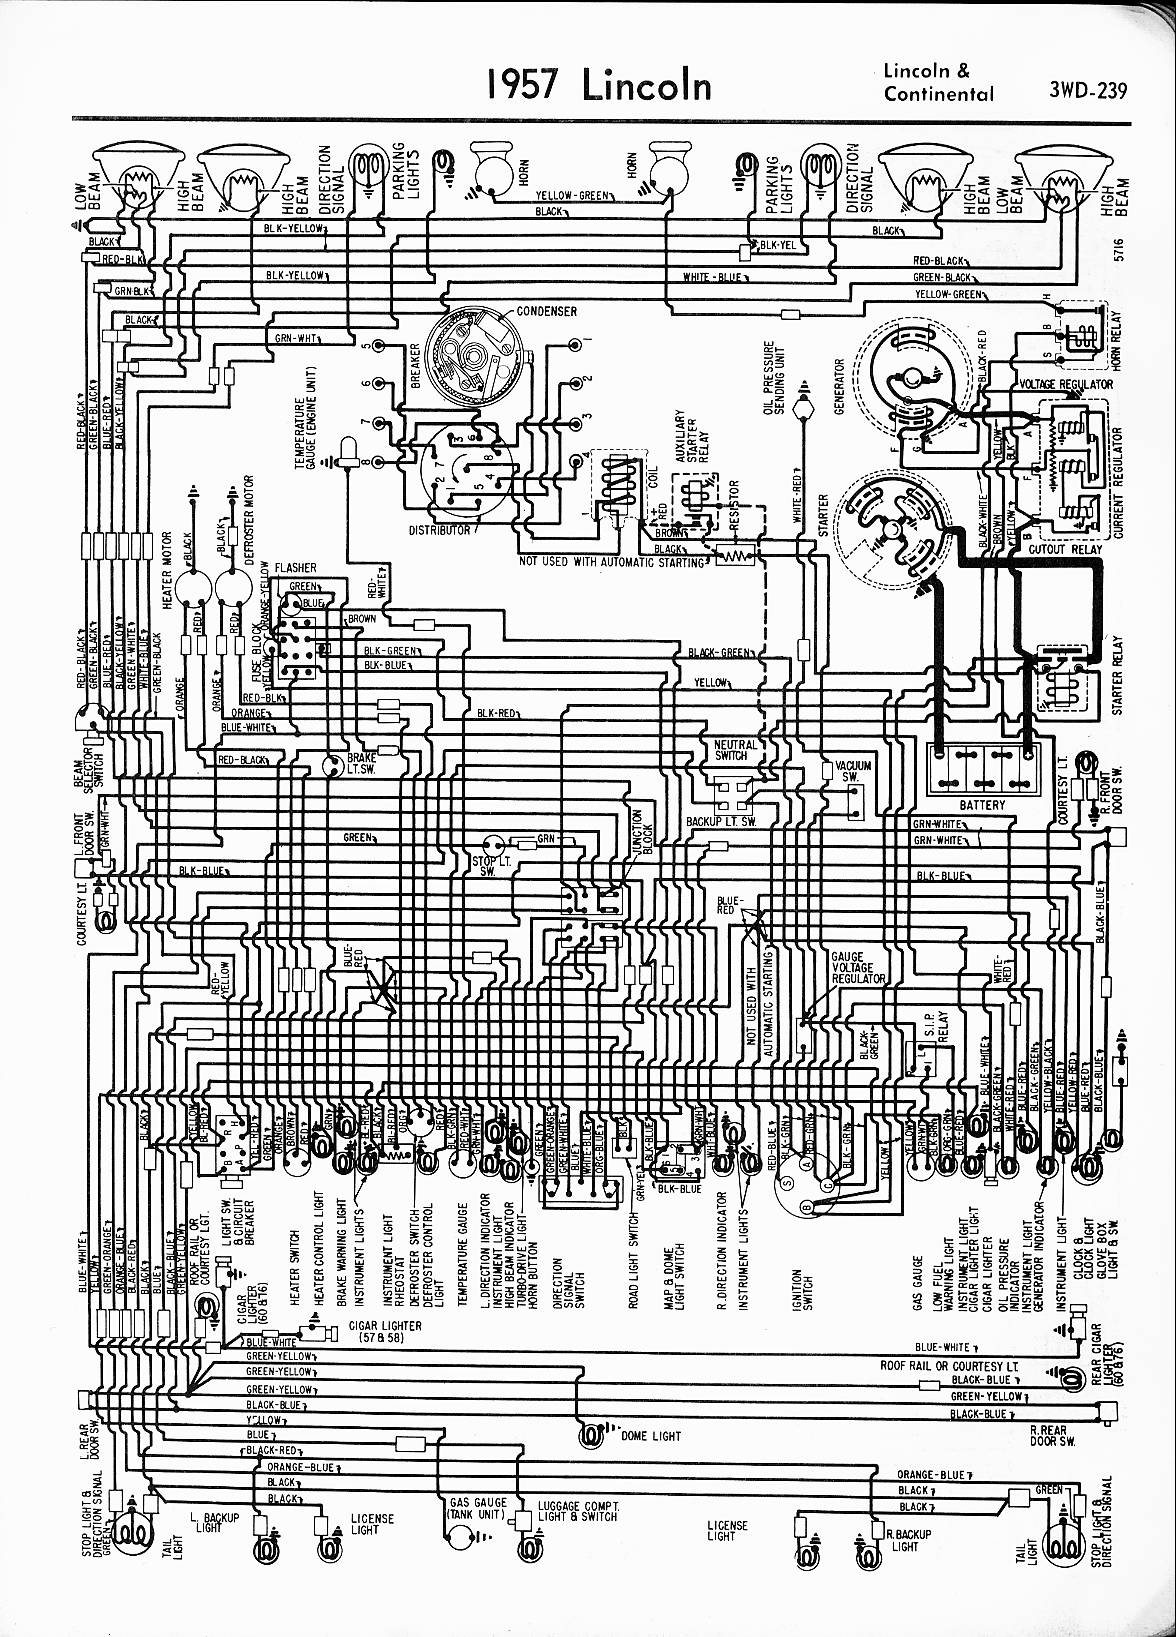 MWireLin_Lin57_z3wd 239z_001 lincoln wiring diagrams 1957 1965 1969 Lincoln Wiring Diagram at creativeand.co